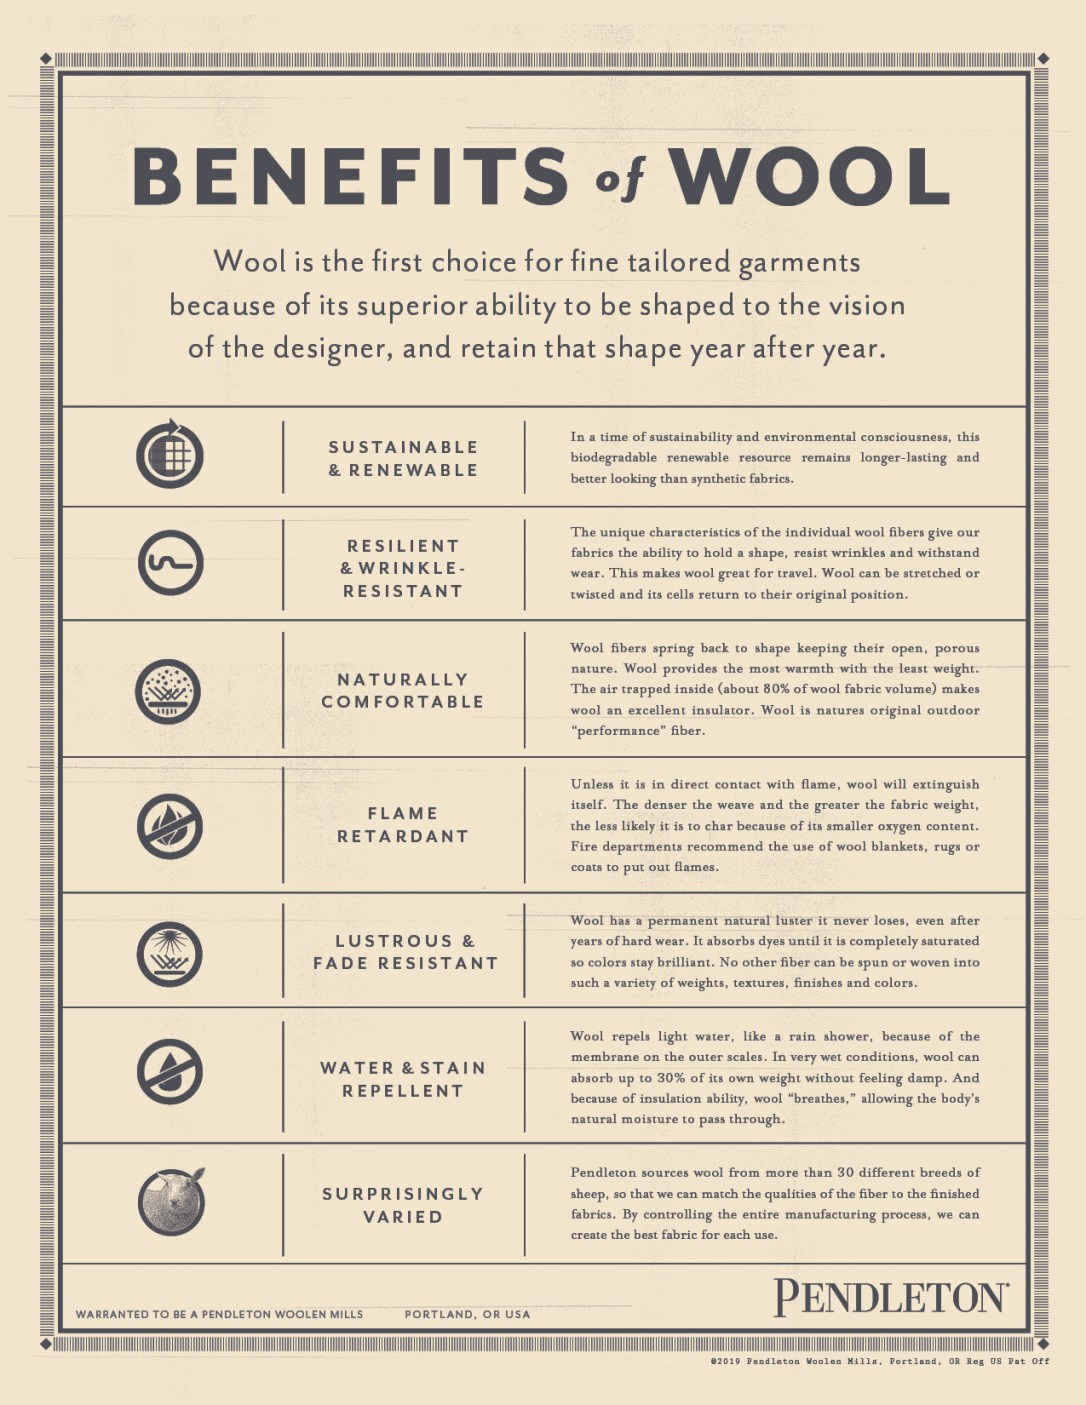 Benefits of wool graphic touting the flollowing characteristics of wool: Sustainable & renewable, resilient & wrinkle-resistant, naturally comfortable, flame retardant, lustrous & fade resistant, water & stain relellent, Surprisingly varied